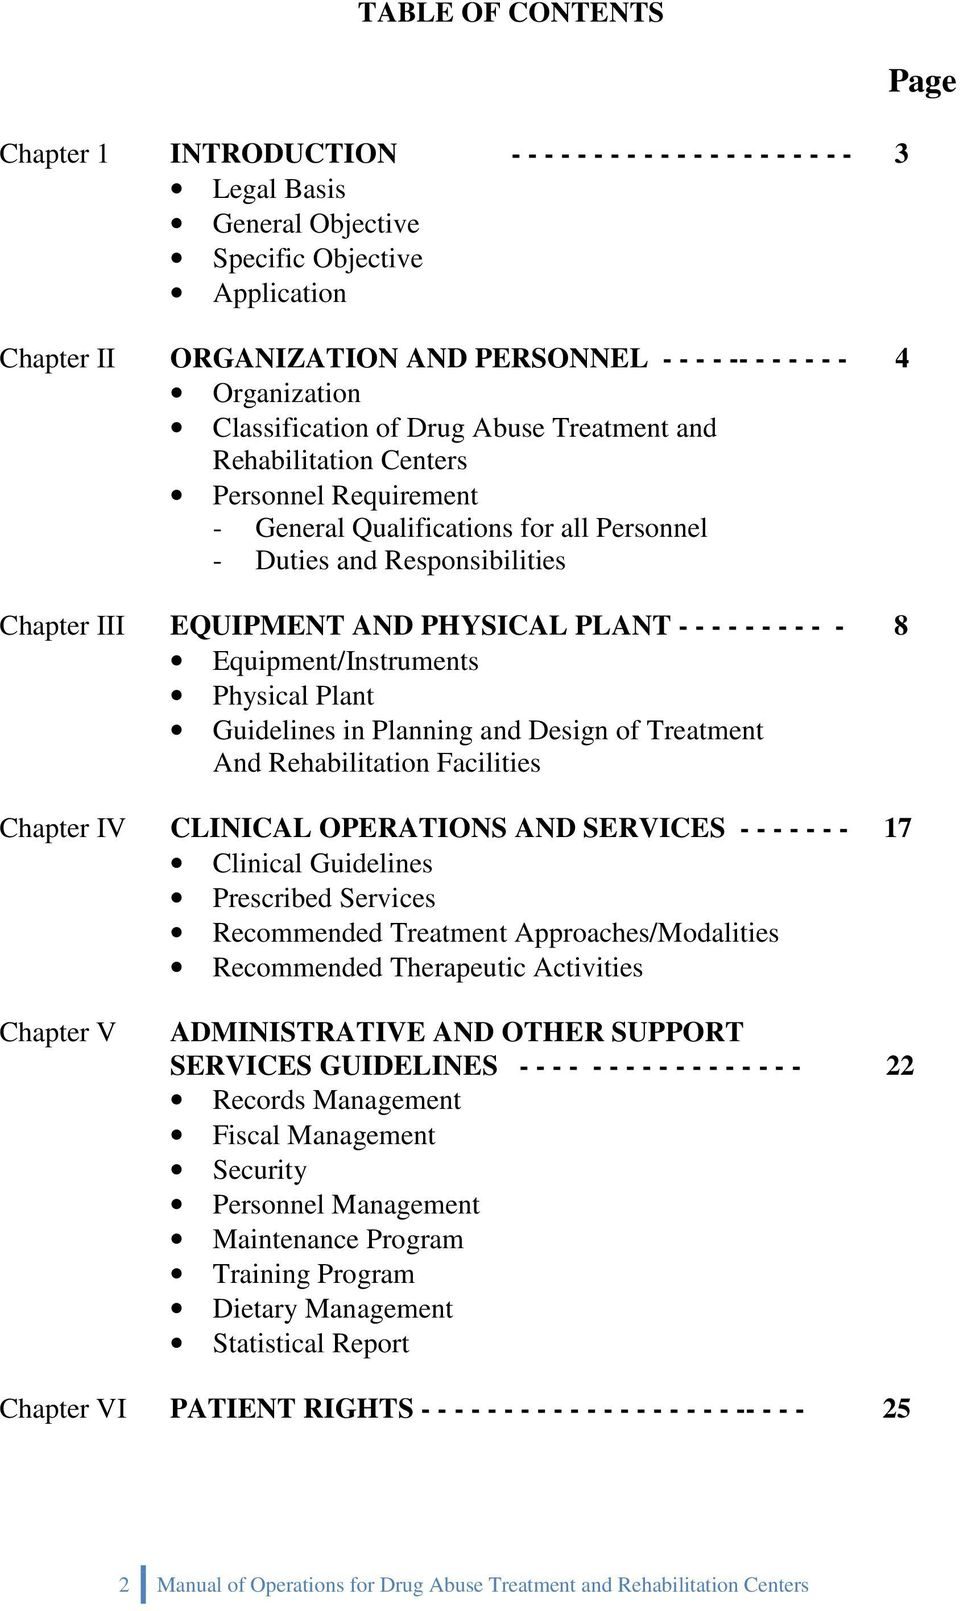 EQUIPMENT AND PHYSICAL PLANT - - - - - - - - - - 8 Equipment/Instruments Physical Plant Guidelines in Planning and Design of Treatment And Rehabilitation Facilities Chapter IV CLINICAL OPERATIONS AND